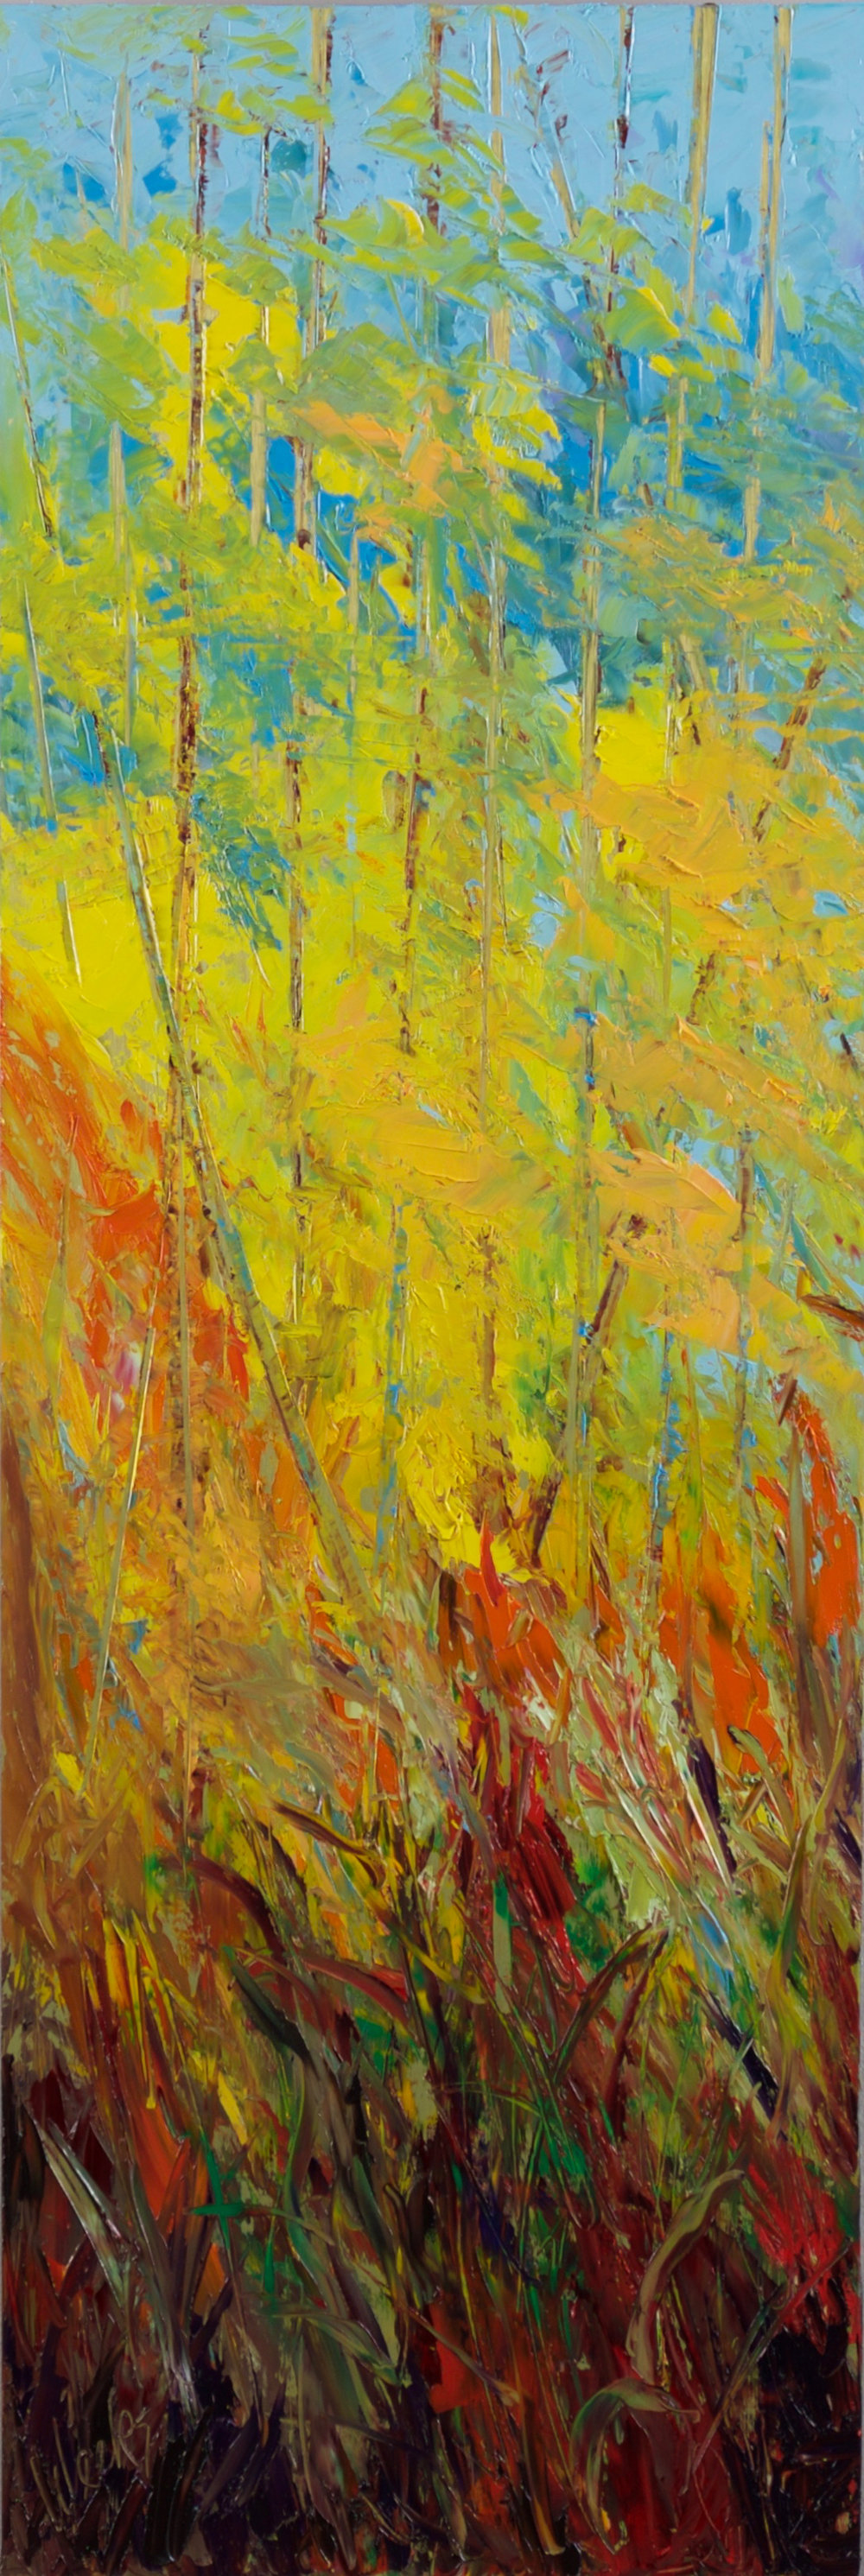 """In the Weeds"" - 36 x 12 inch"